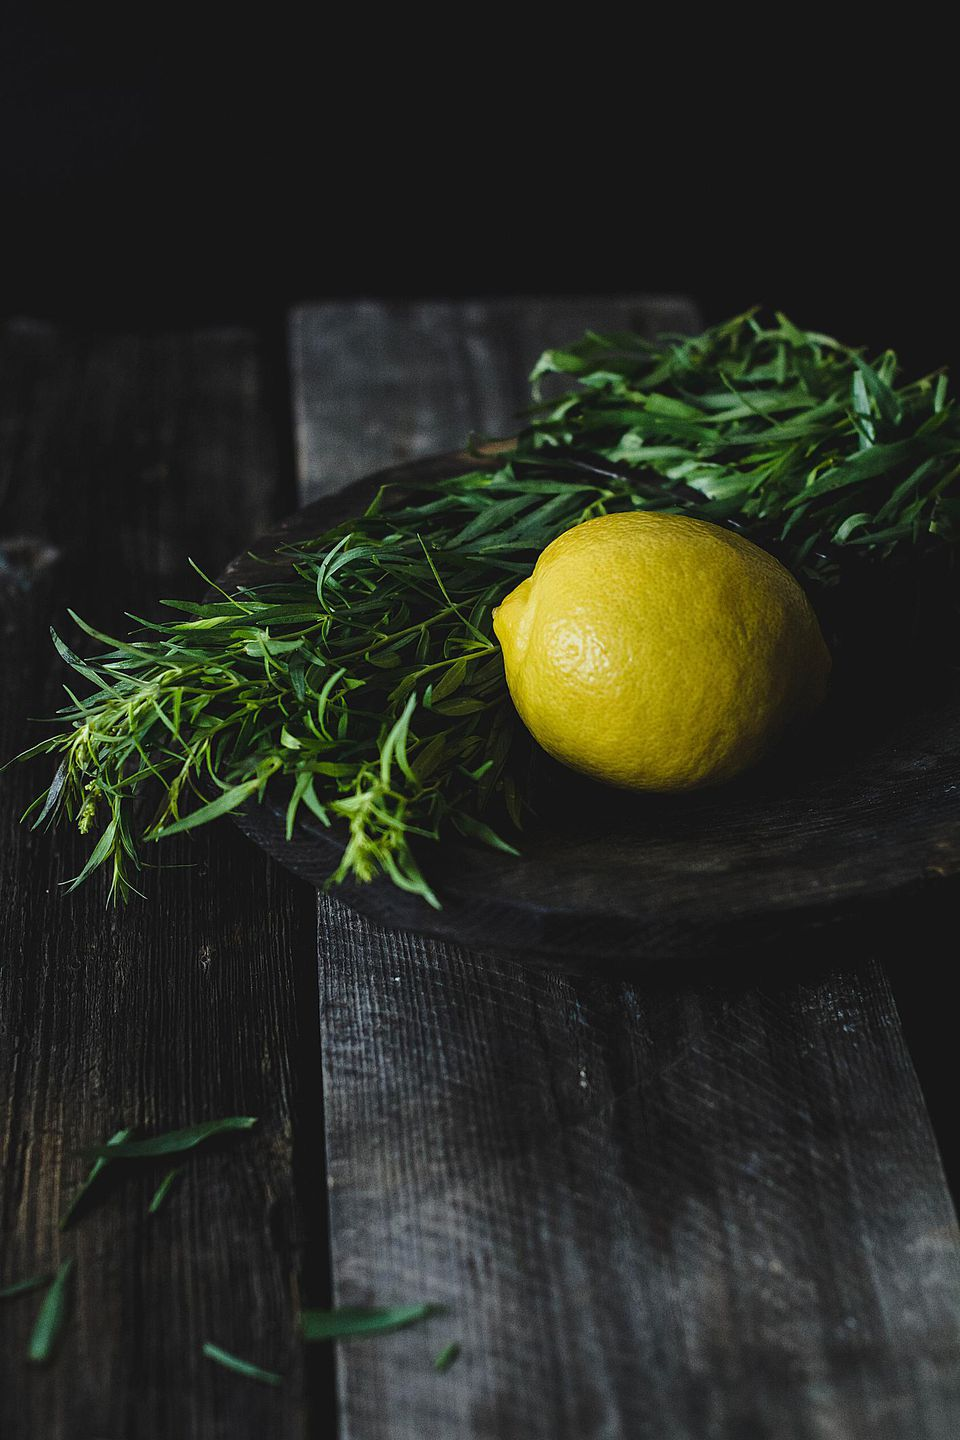 Tarragon is perfect for an aoili